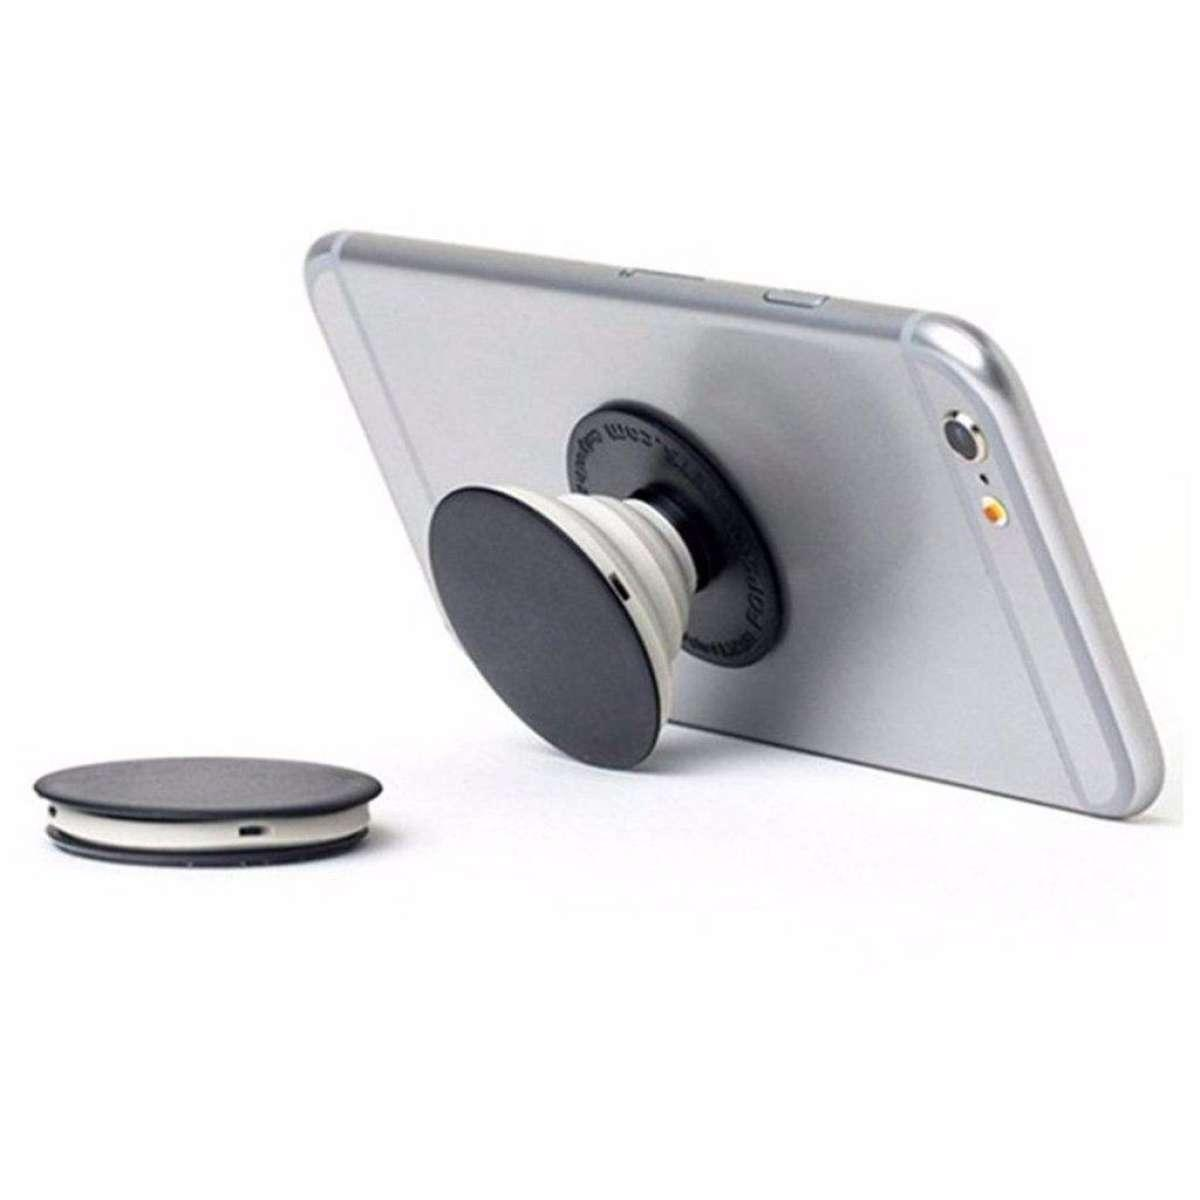 Mobile Phone Holder - Mobile Phone Stand Black - Phone carrier - Phone Stand